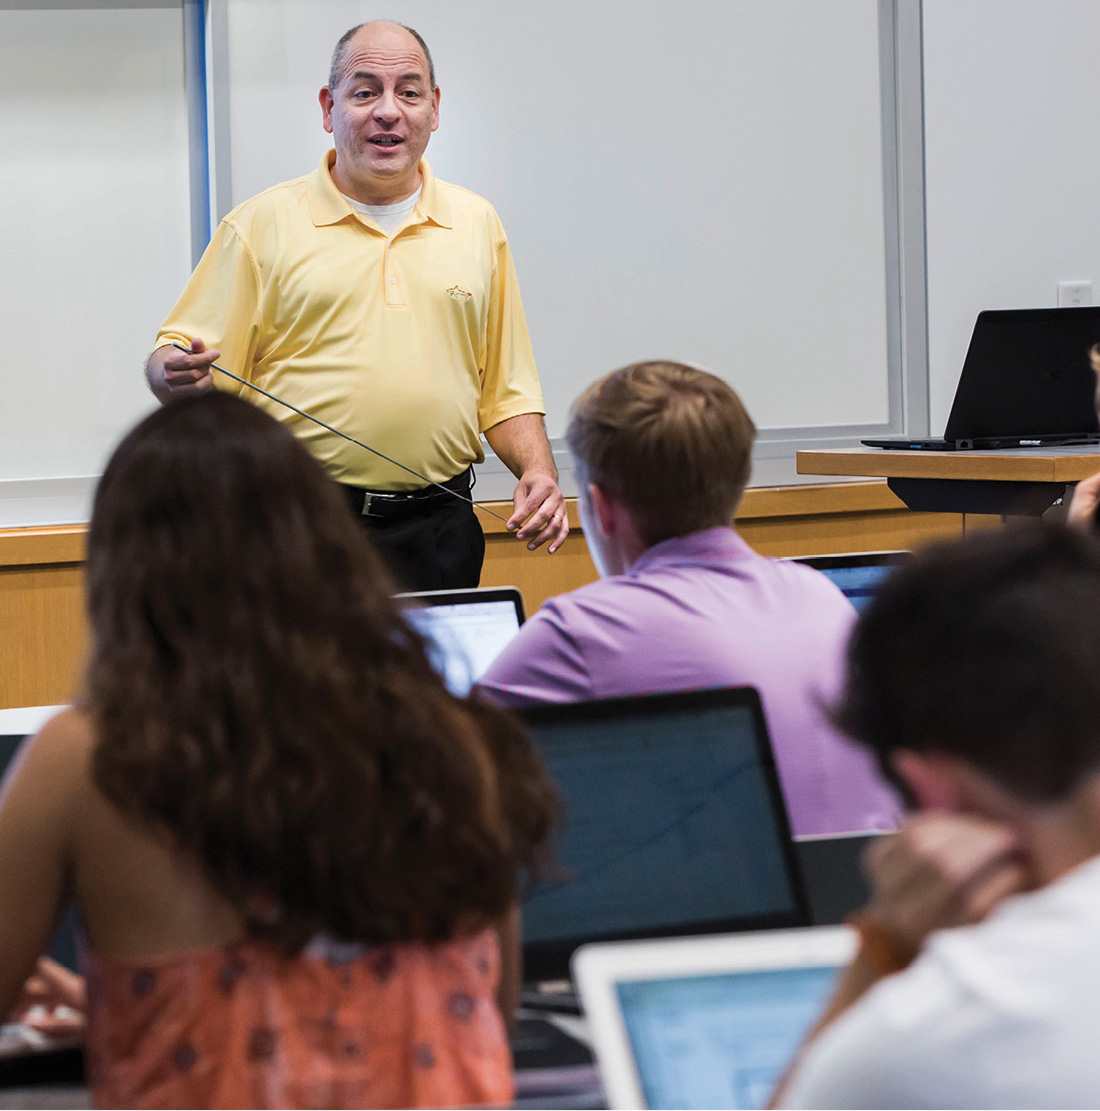 Michael Lapré, the E. Bronson Ingram Research Professor of Operations Management, teaches his Managing Operations course in the Owen Graduate School of Management. Lapré is among the faculty members teaching courses for Vanderbilt's new business minor. (SUSAN URMY)